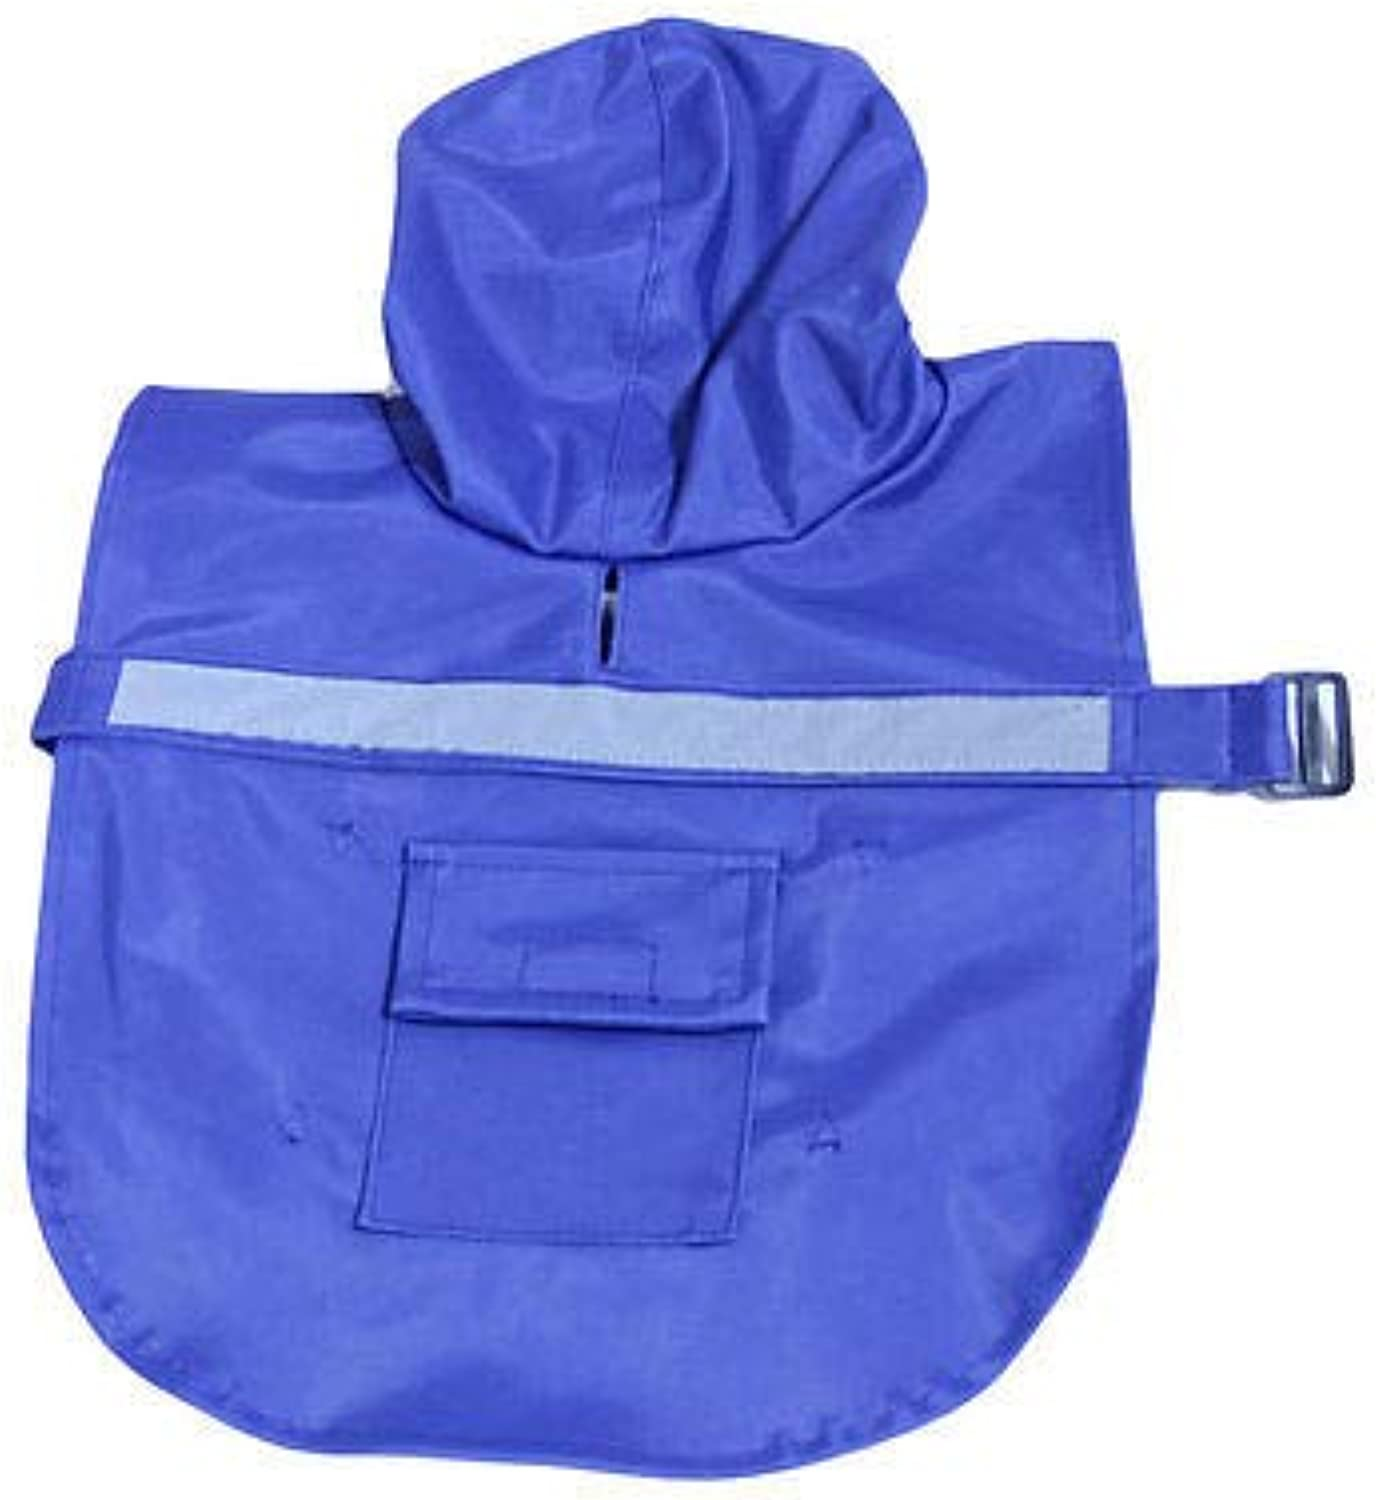 FidgetGear Dog Rain Coat Waterproof Vinyl Slicker Reflective Jacket Pet Outdoor Clothes bluee XXL(30 )